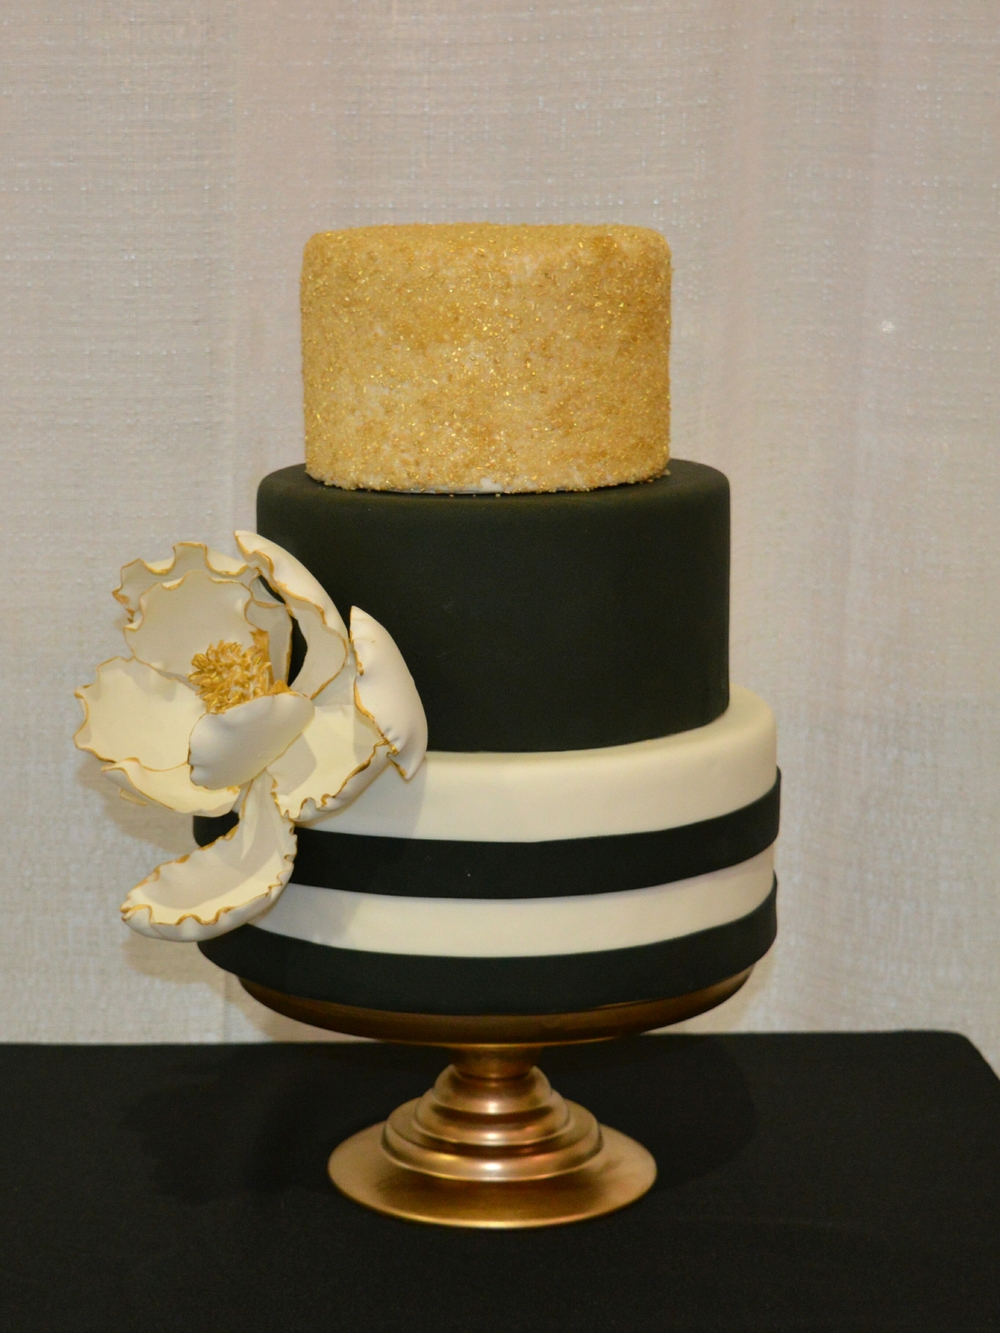 Gold and black wedding cake with sugar magnolia by Sarah Blanchard